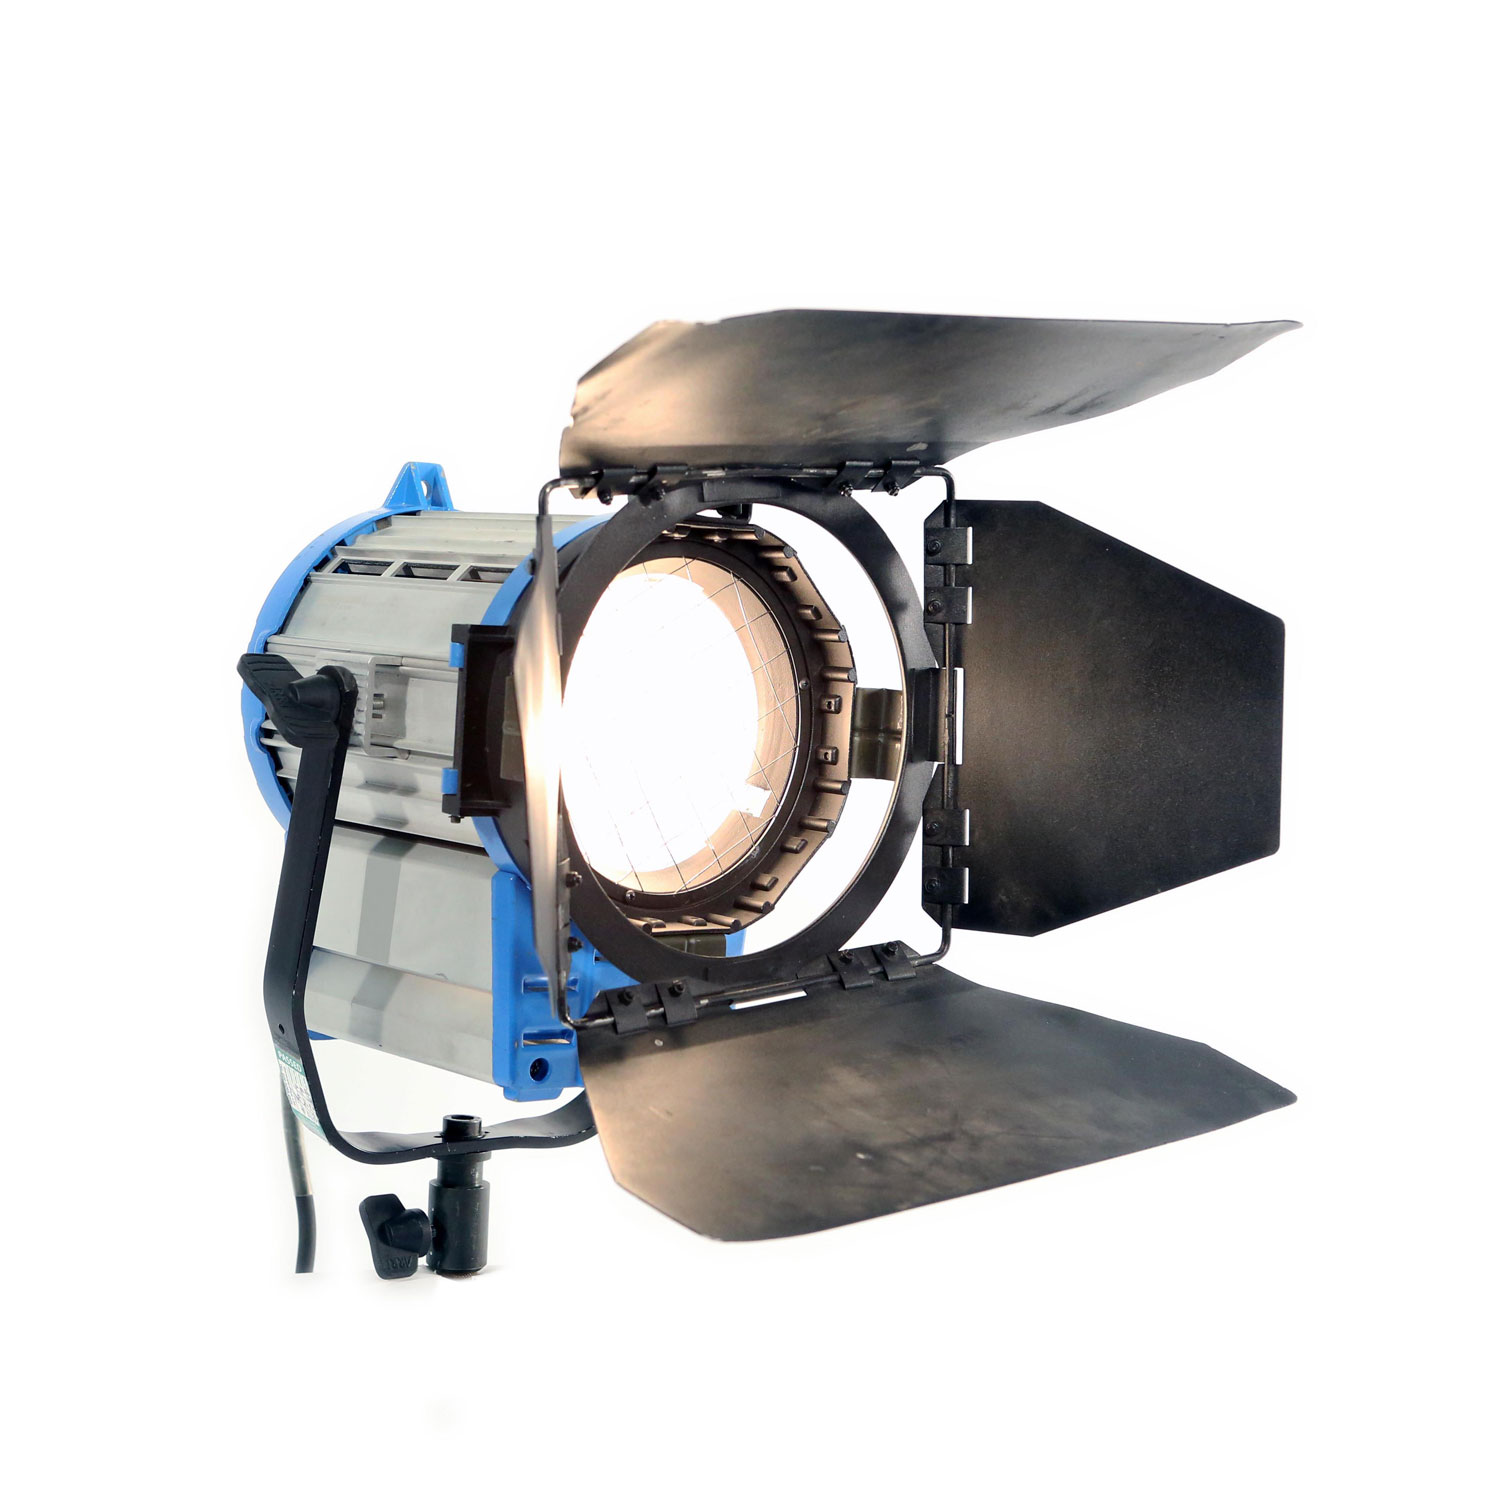 نور فرزنل JG1000 اس اند اس S&S JG1000 Fresnel Light